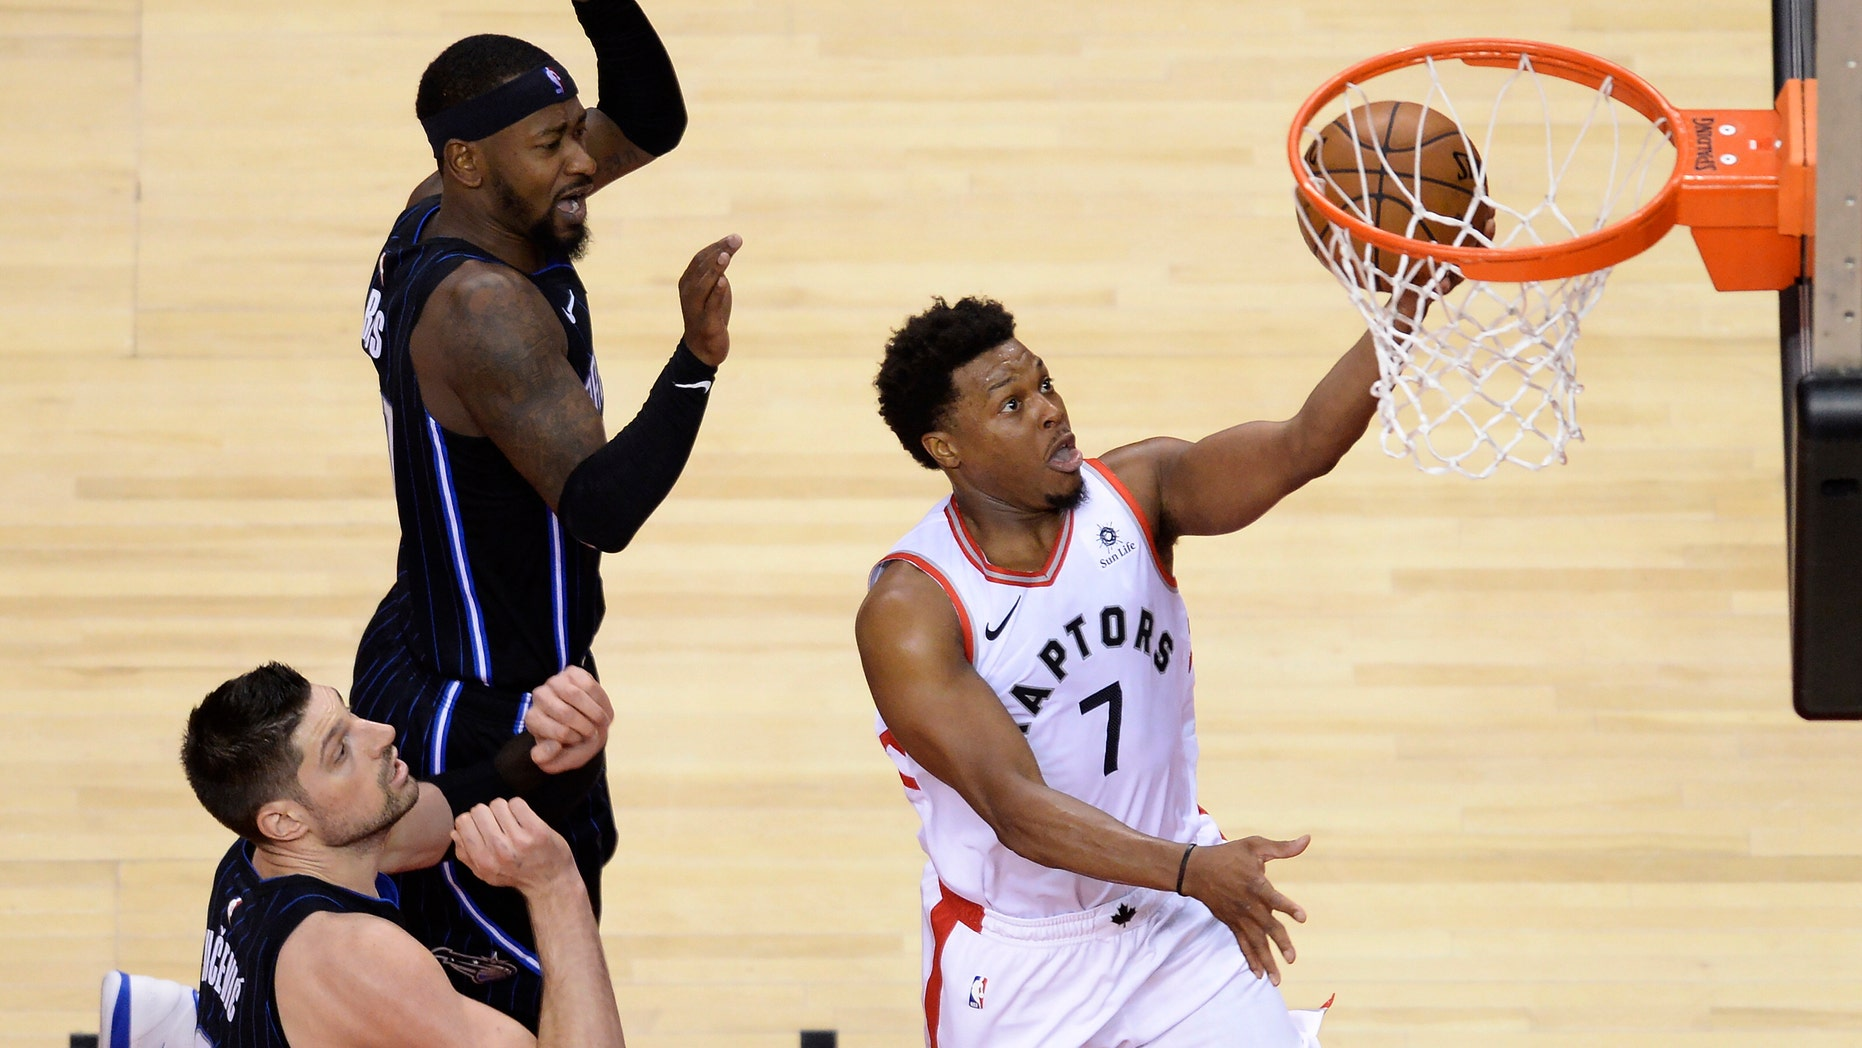 Toronto Raptors guard Kyle Lowry (7) scores past Orlando Magic center Nikola Vucevic (9) and guard Terrence Ross (31) during the second half of Game 2 of an NBA basketball first-round playoff series Tuesday, April 16, 2019, in Toronto. (Nathan Denette/The Canadian Press via AP)